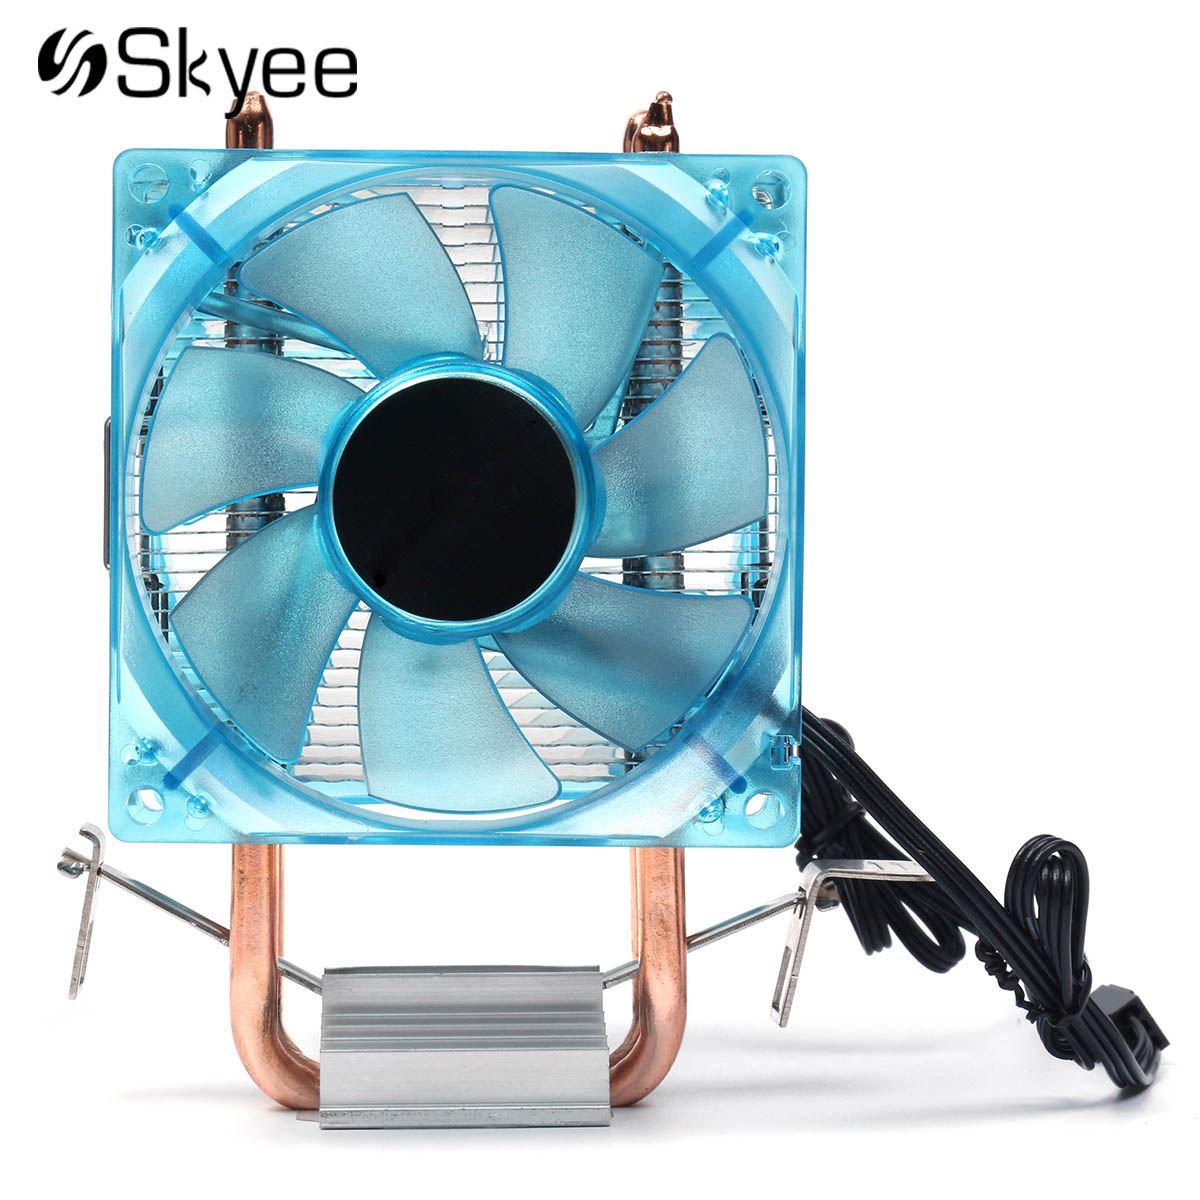 2018 LED CPU Cooling Fan 90mm Dual Copper Pipe Aluminum Heatsink Cooler Cooling Fan for AMD FM1 AM2 + AM3 +Intel 775 1155 1156 best quality pc cpu cooler cooling fan heatsink for intel lga775 1155 amd am2 am3